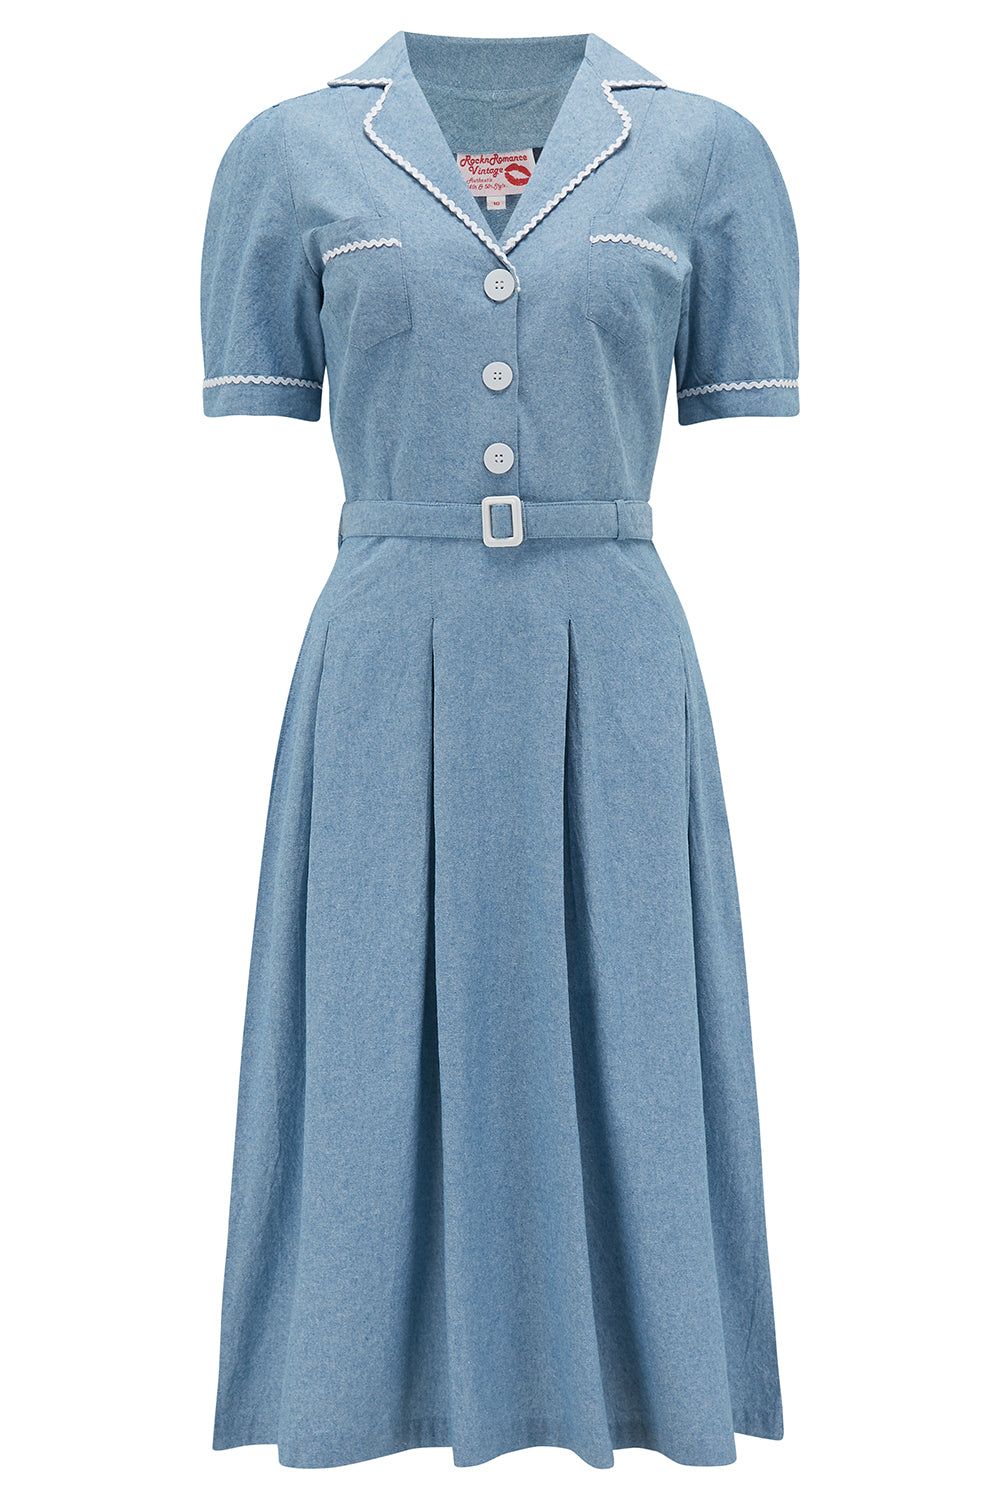 Pin Up Girl Costumes | Pin Up Costumes The Kitty Shirtwaister Dress in Lightweight Denim Cotton Chambray with Contrast Ric-Rac True Late 40s Early 1950s Vintage Style £49.00 AT vintagedancer.com